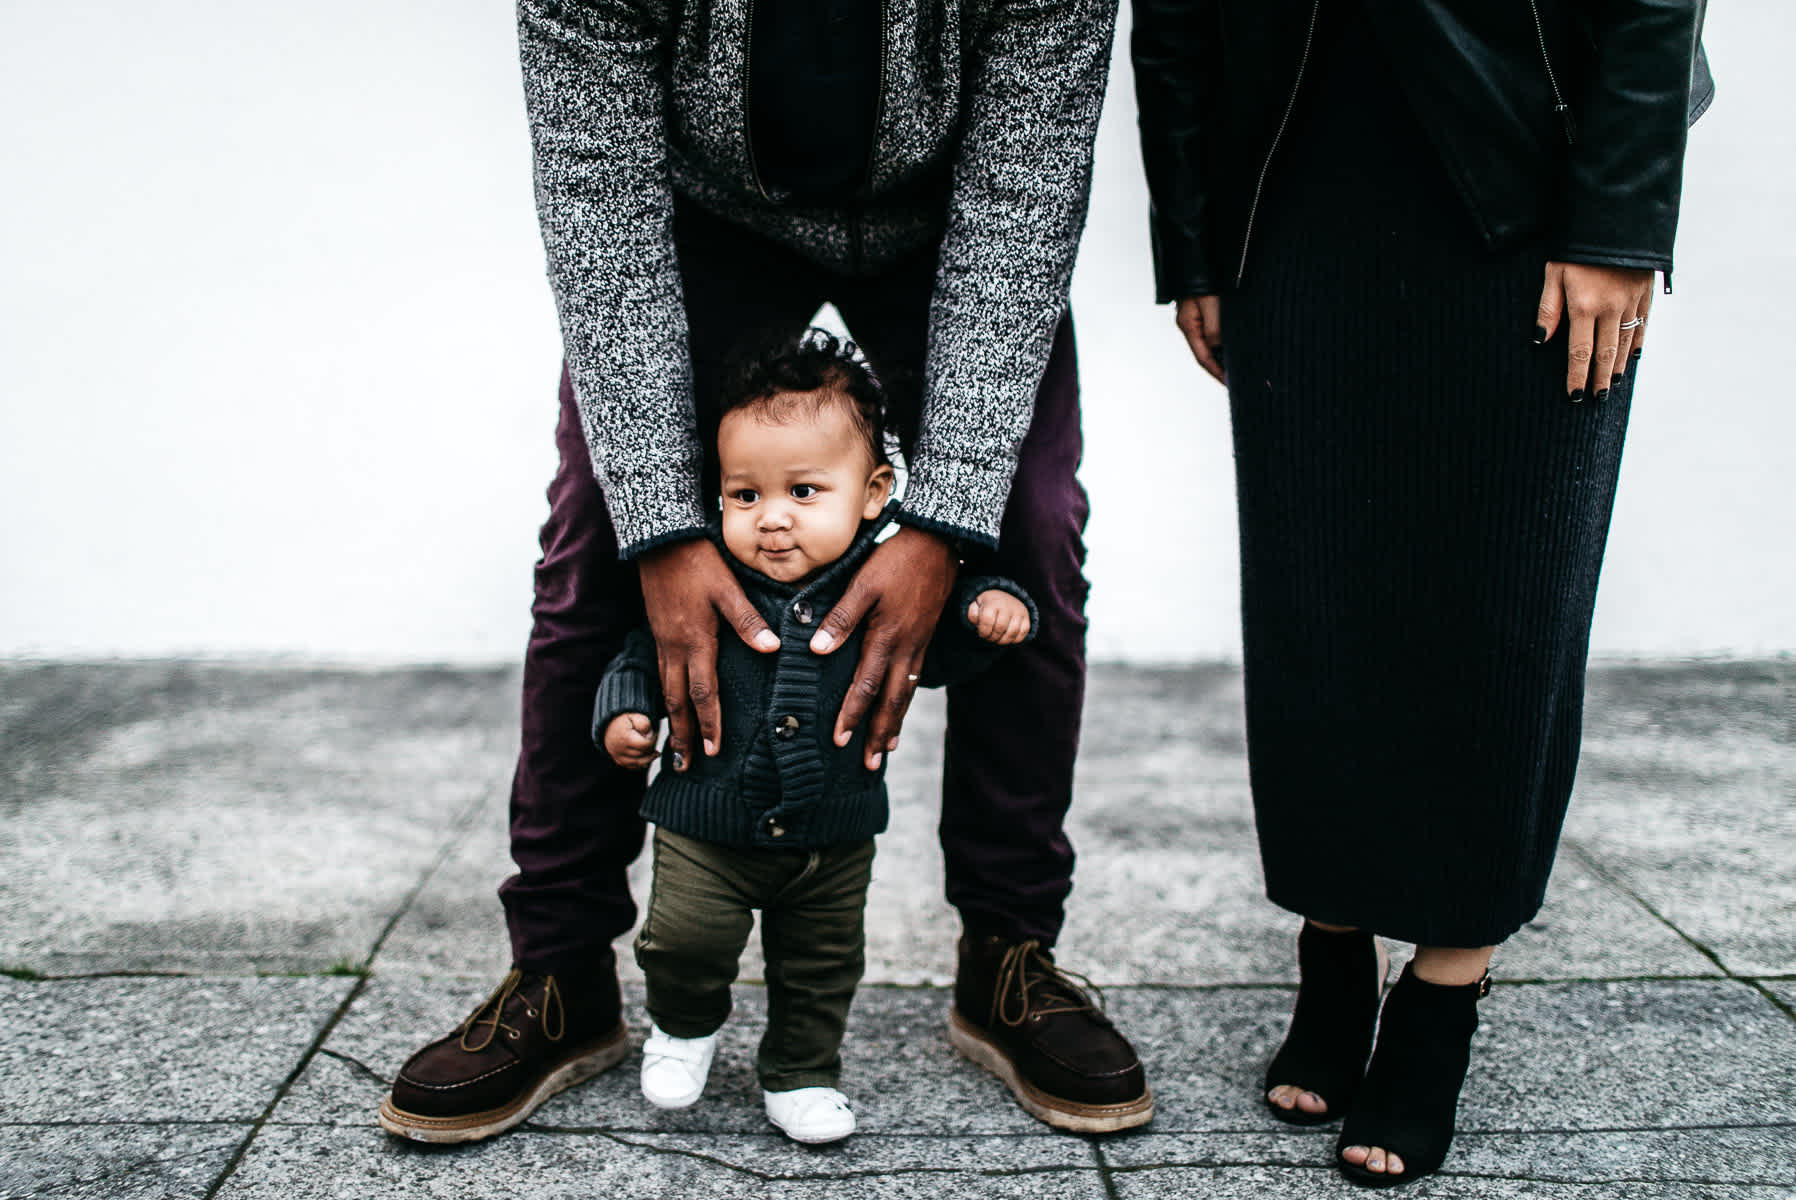 oakland-redwoods-urban-family-session-44